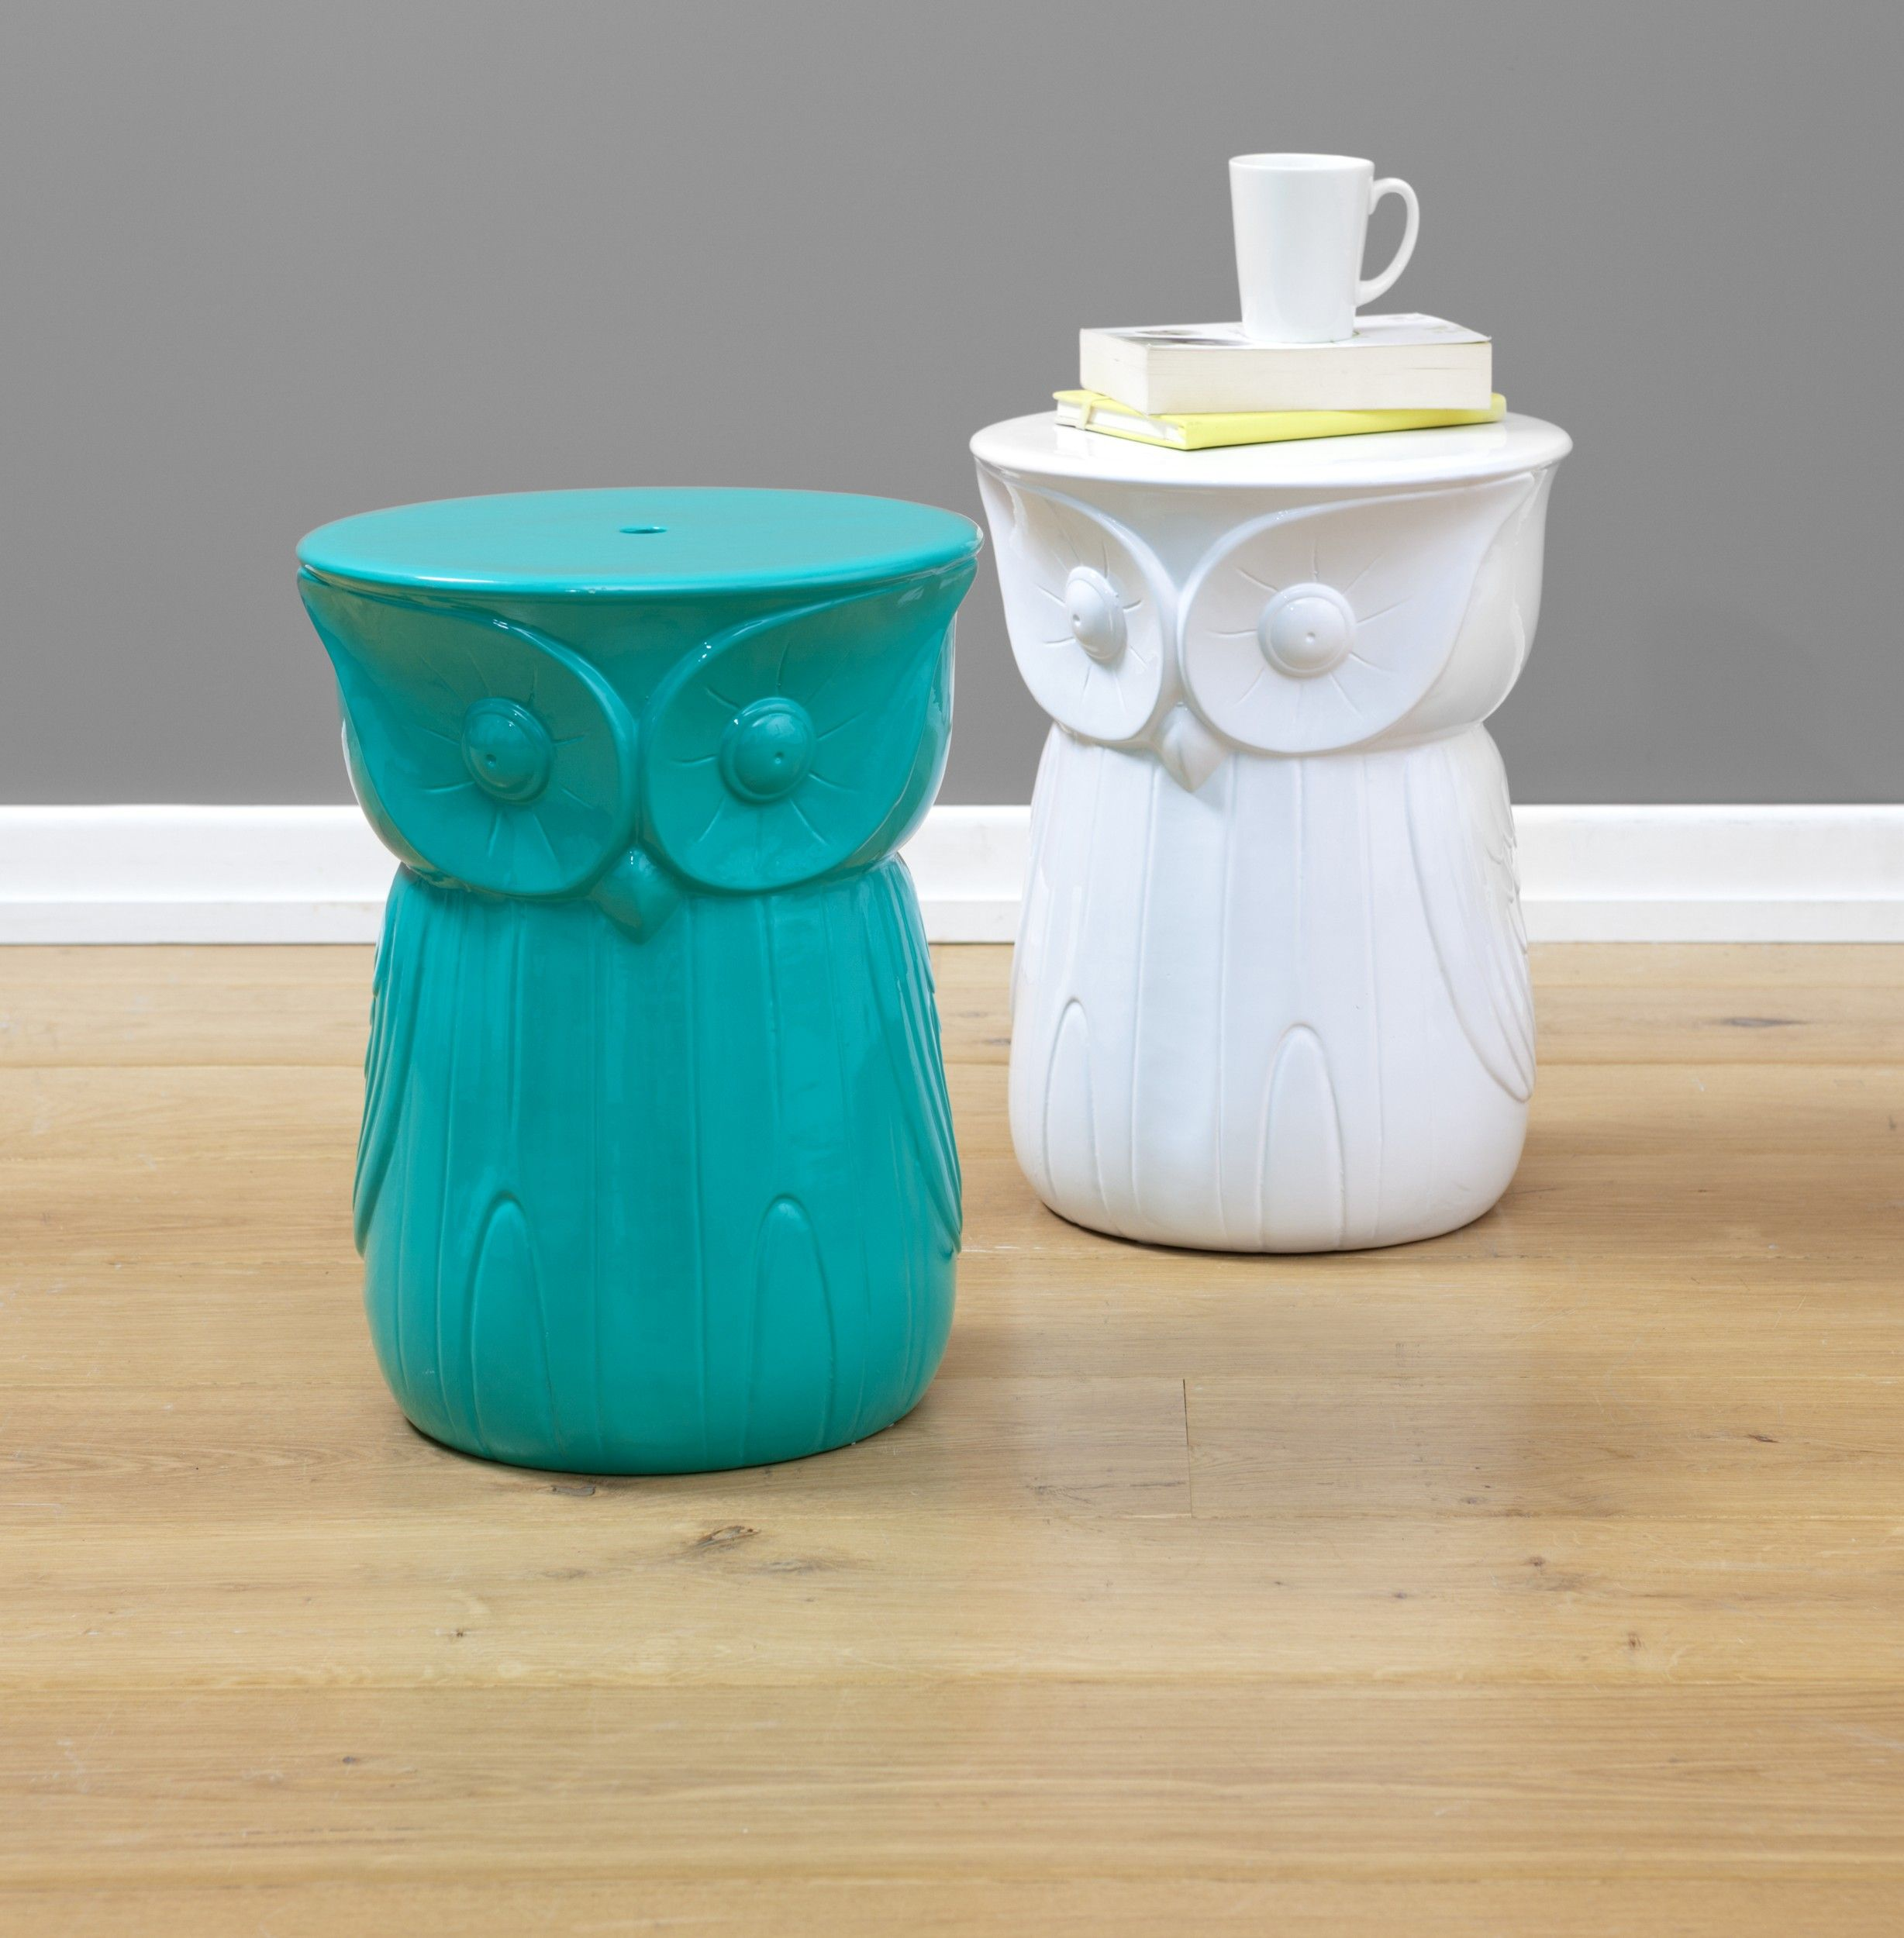 Gorgeous teal and white owl ceramic side tables now at The Reject